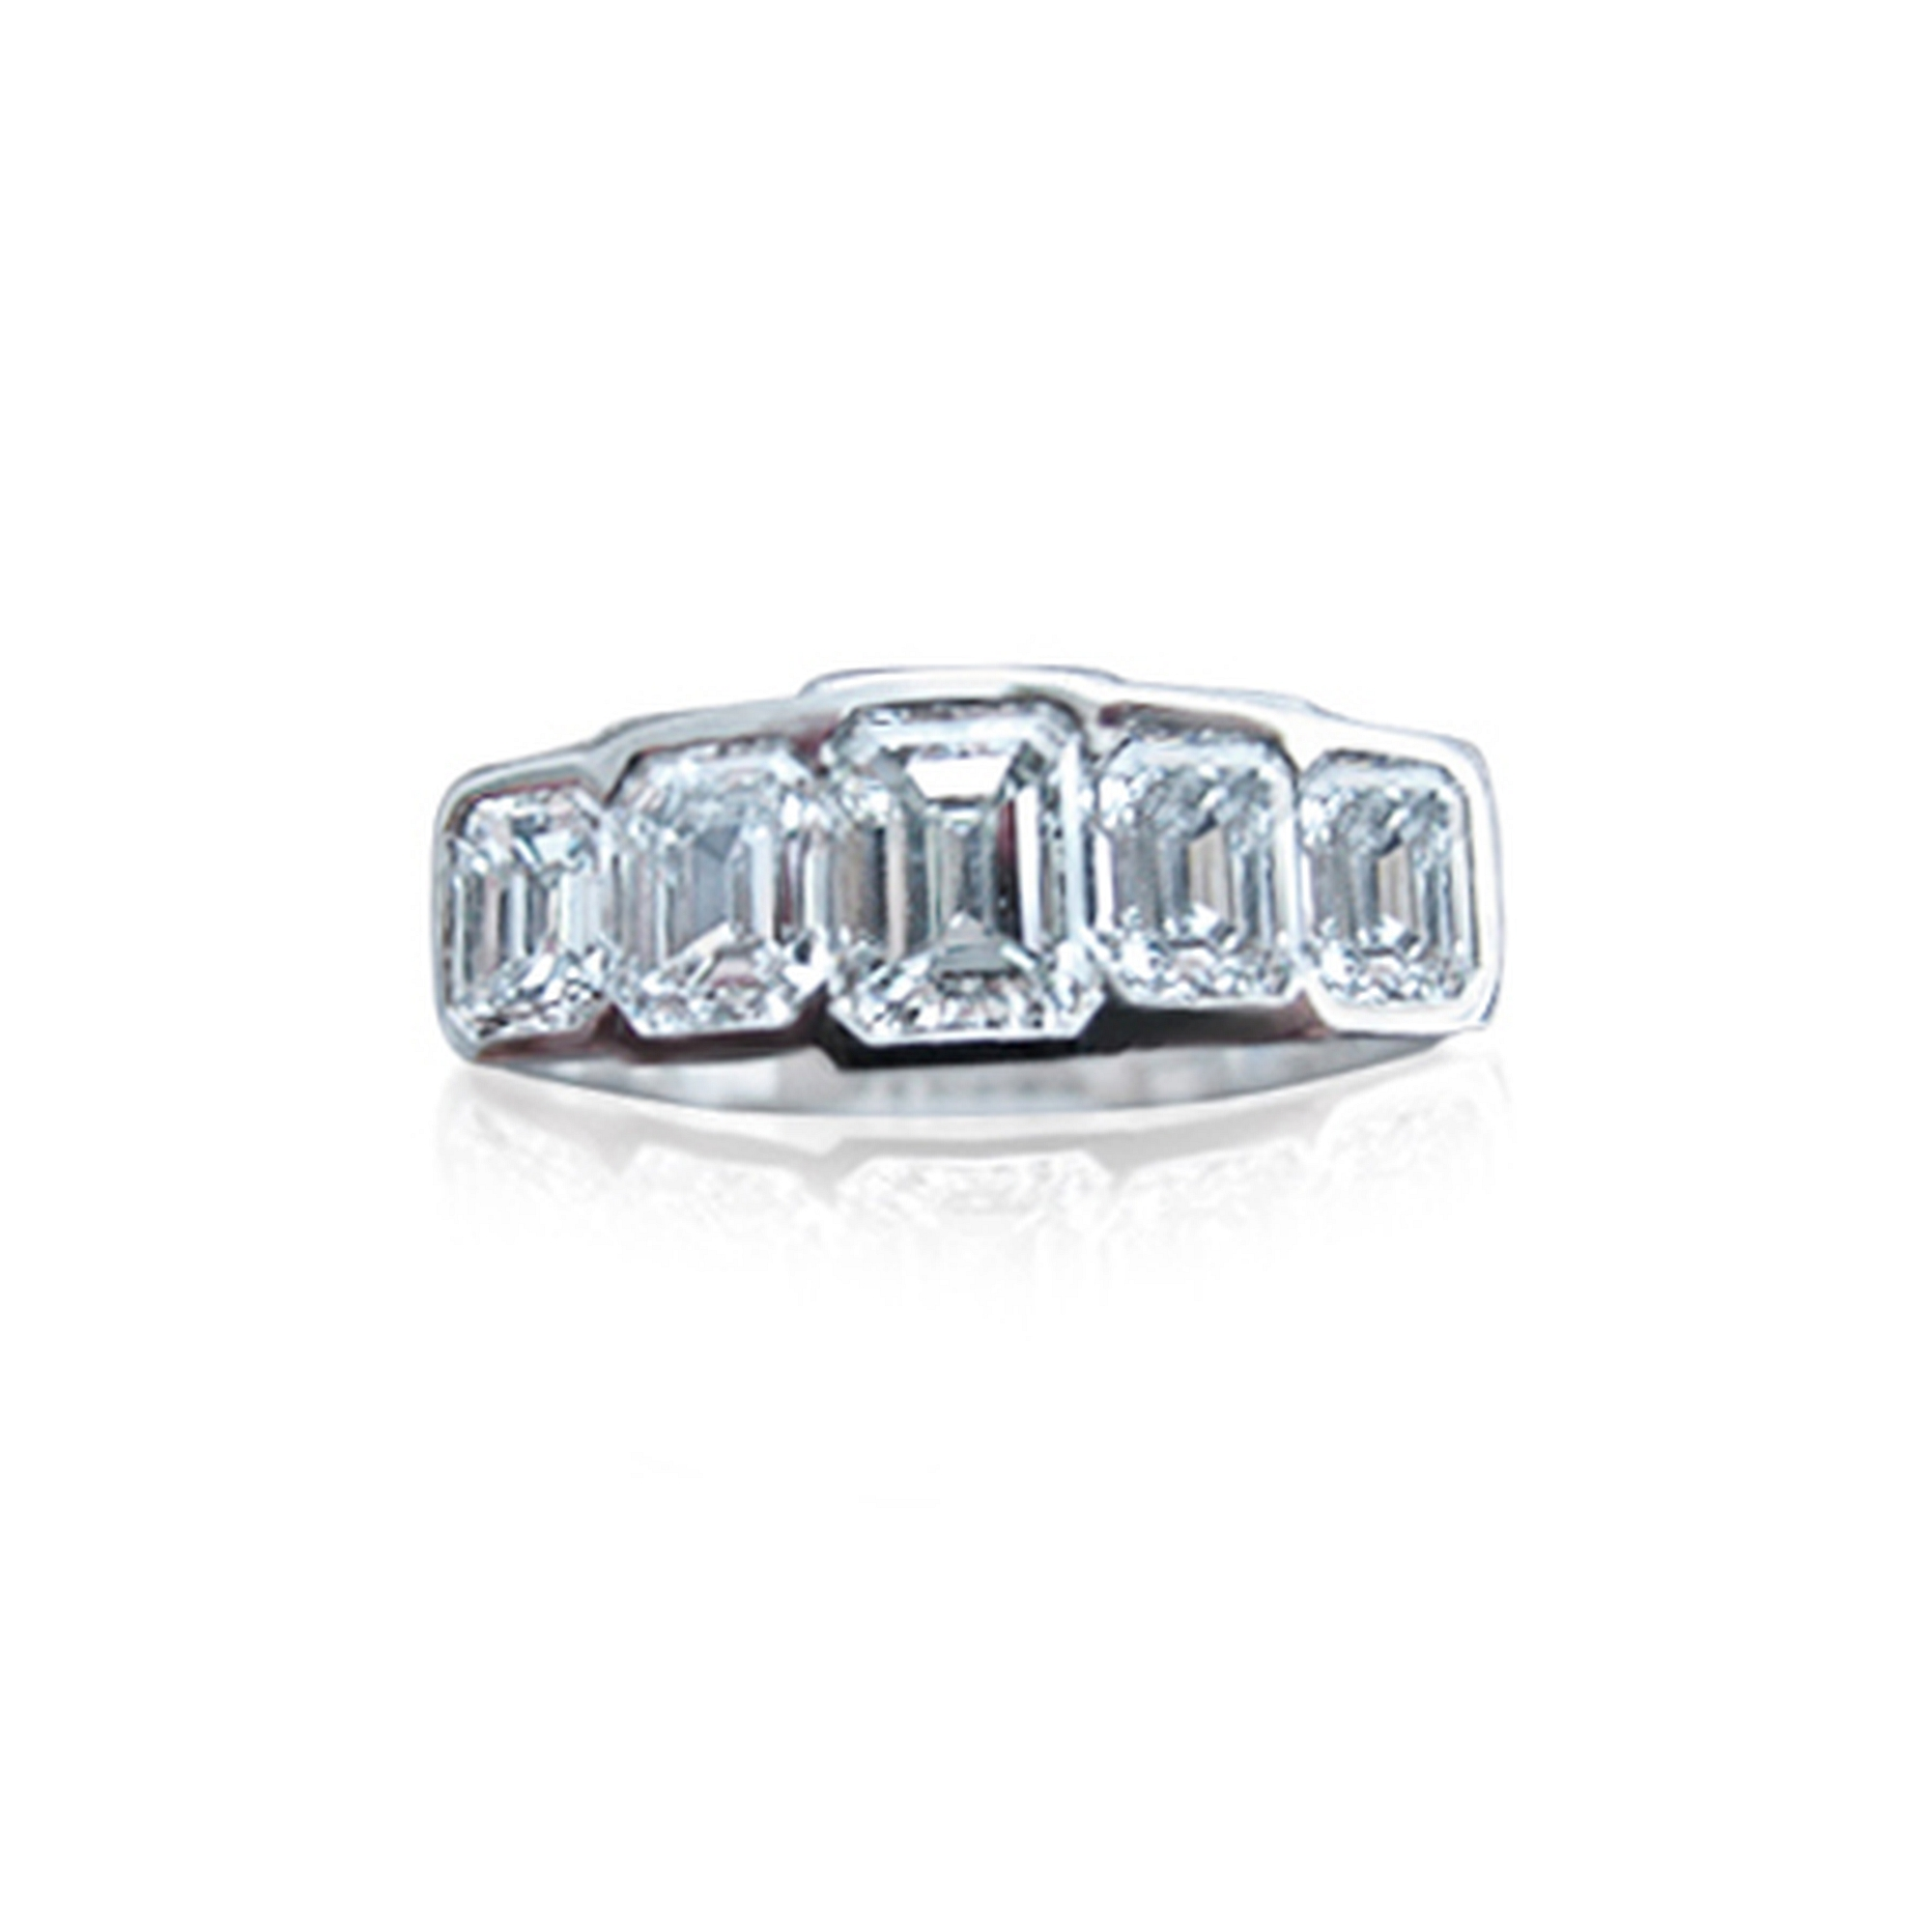 Emerald cut diamonds E colour vvs totalling 2.5cts in 18ct white gold this was challenging, all the stones save two were the clients own.